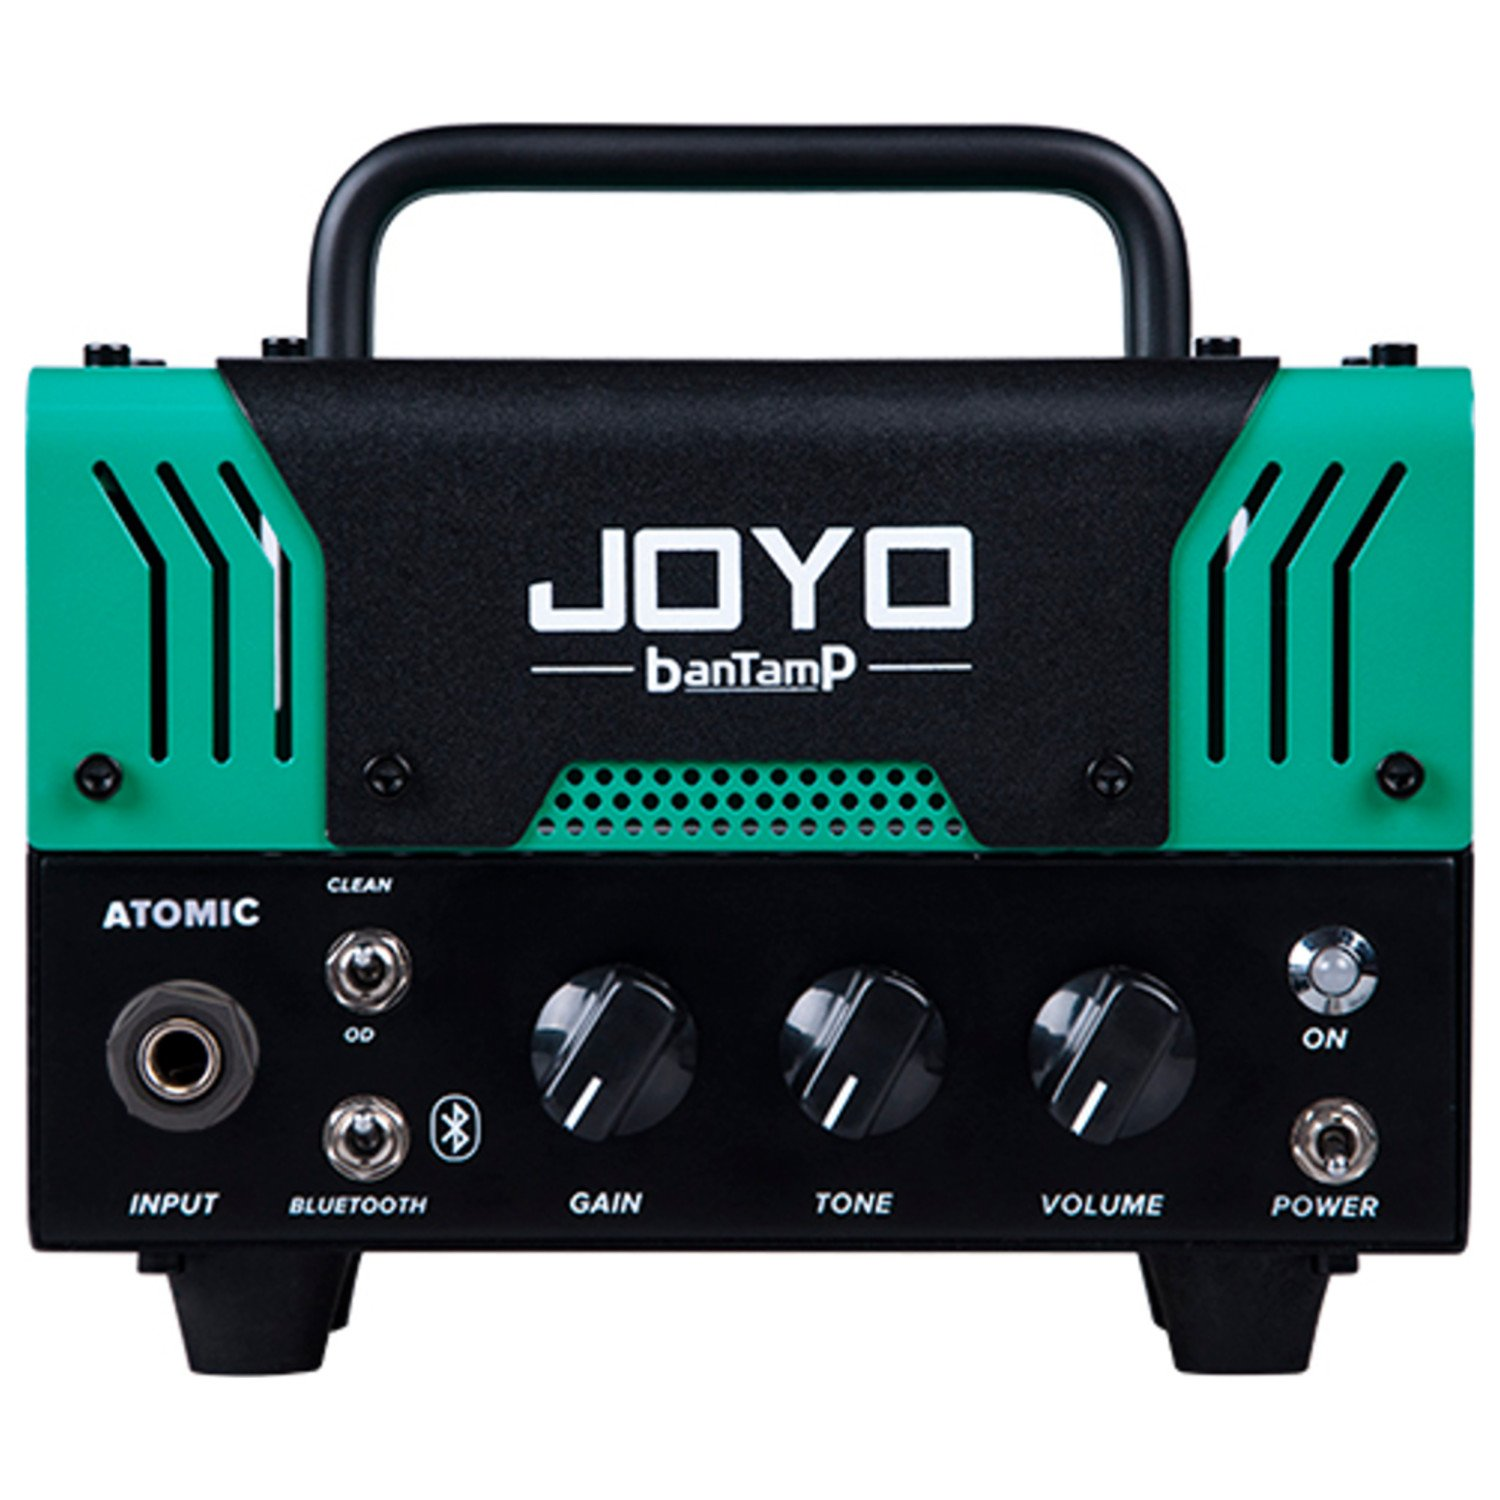 JOYO ATOMIC 20 Watt Mini Tube Head New banTamp Series by Joyo